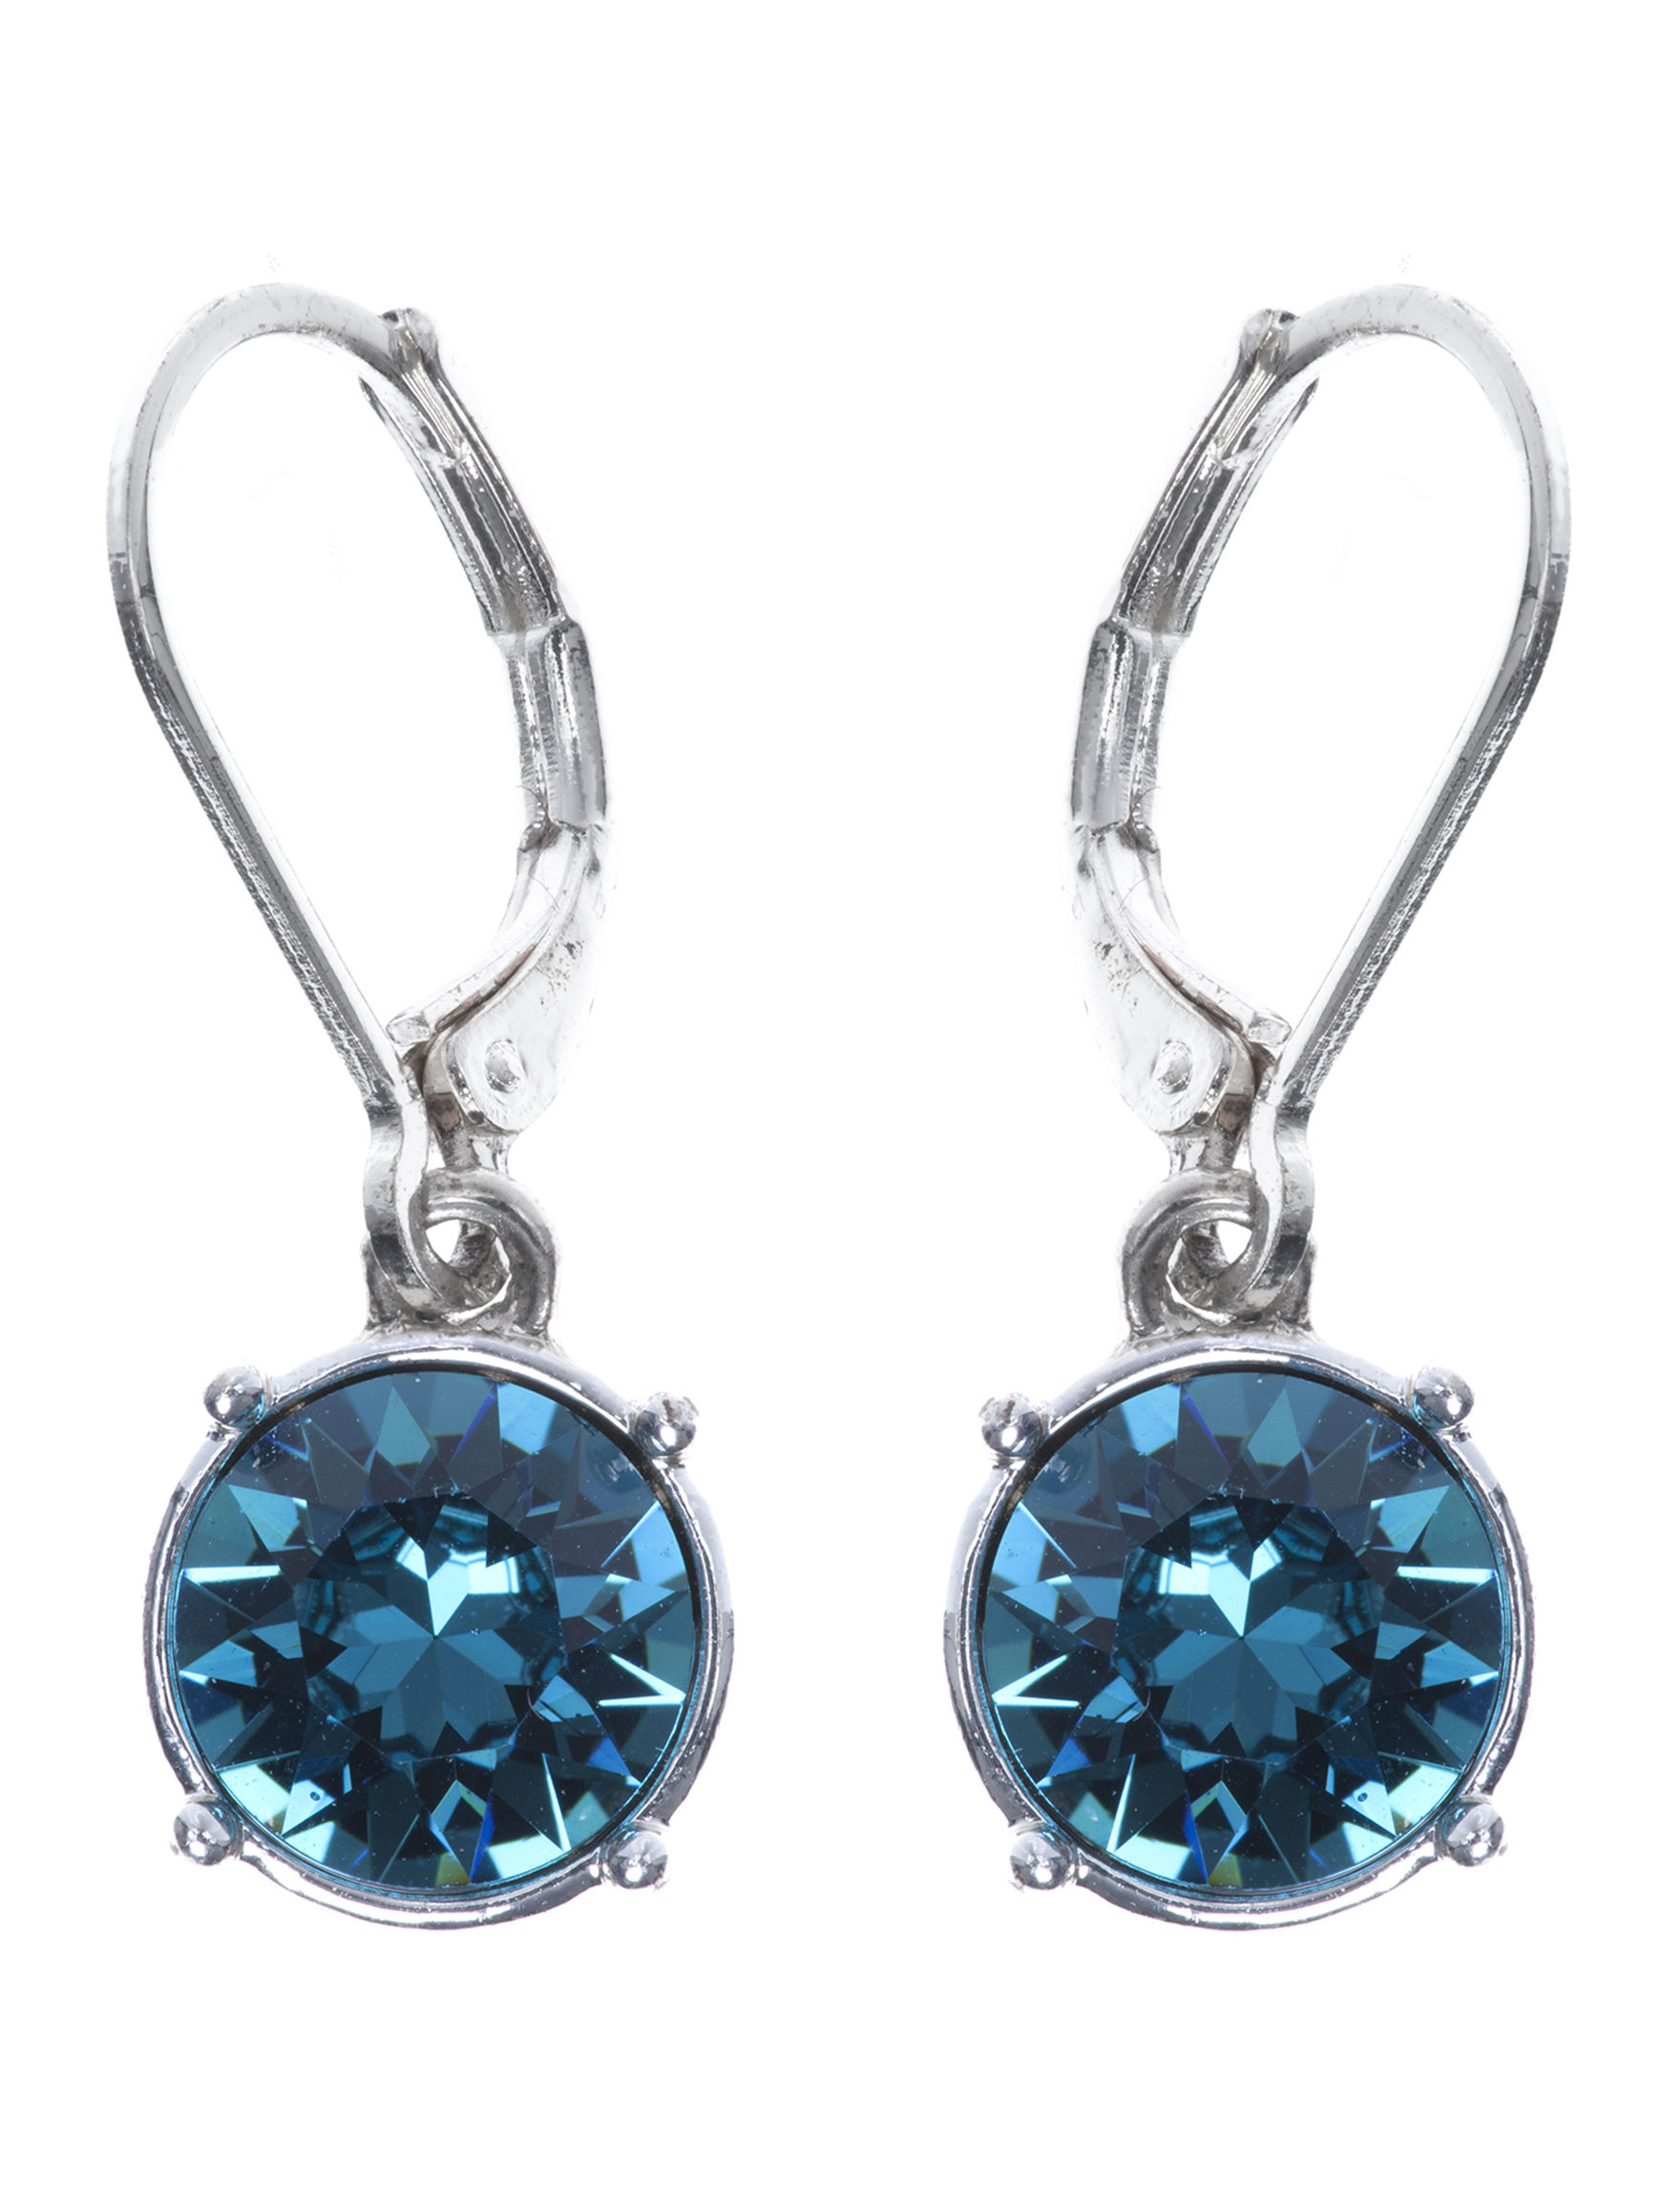 Gloria Vanderbilt Blue / Silver Drops Earrings Fashion Jewelry